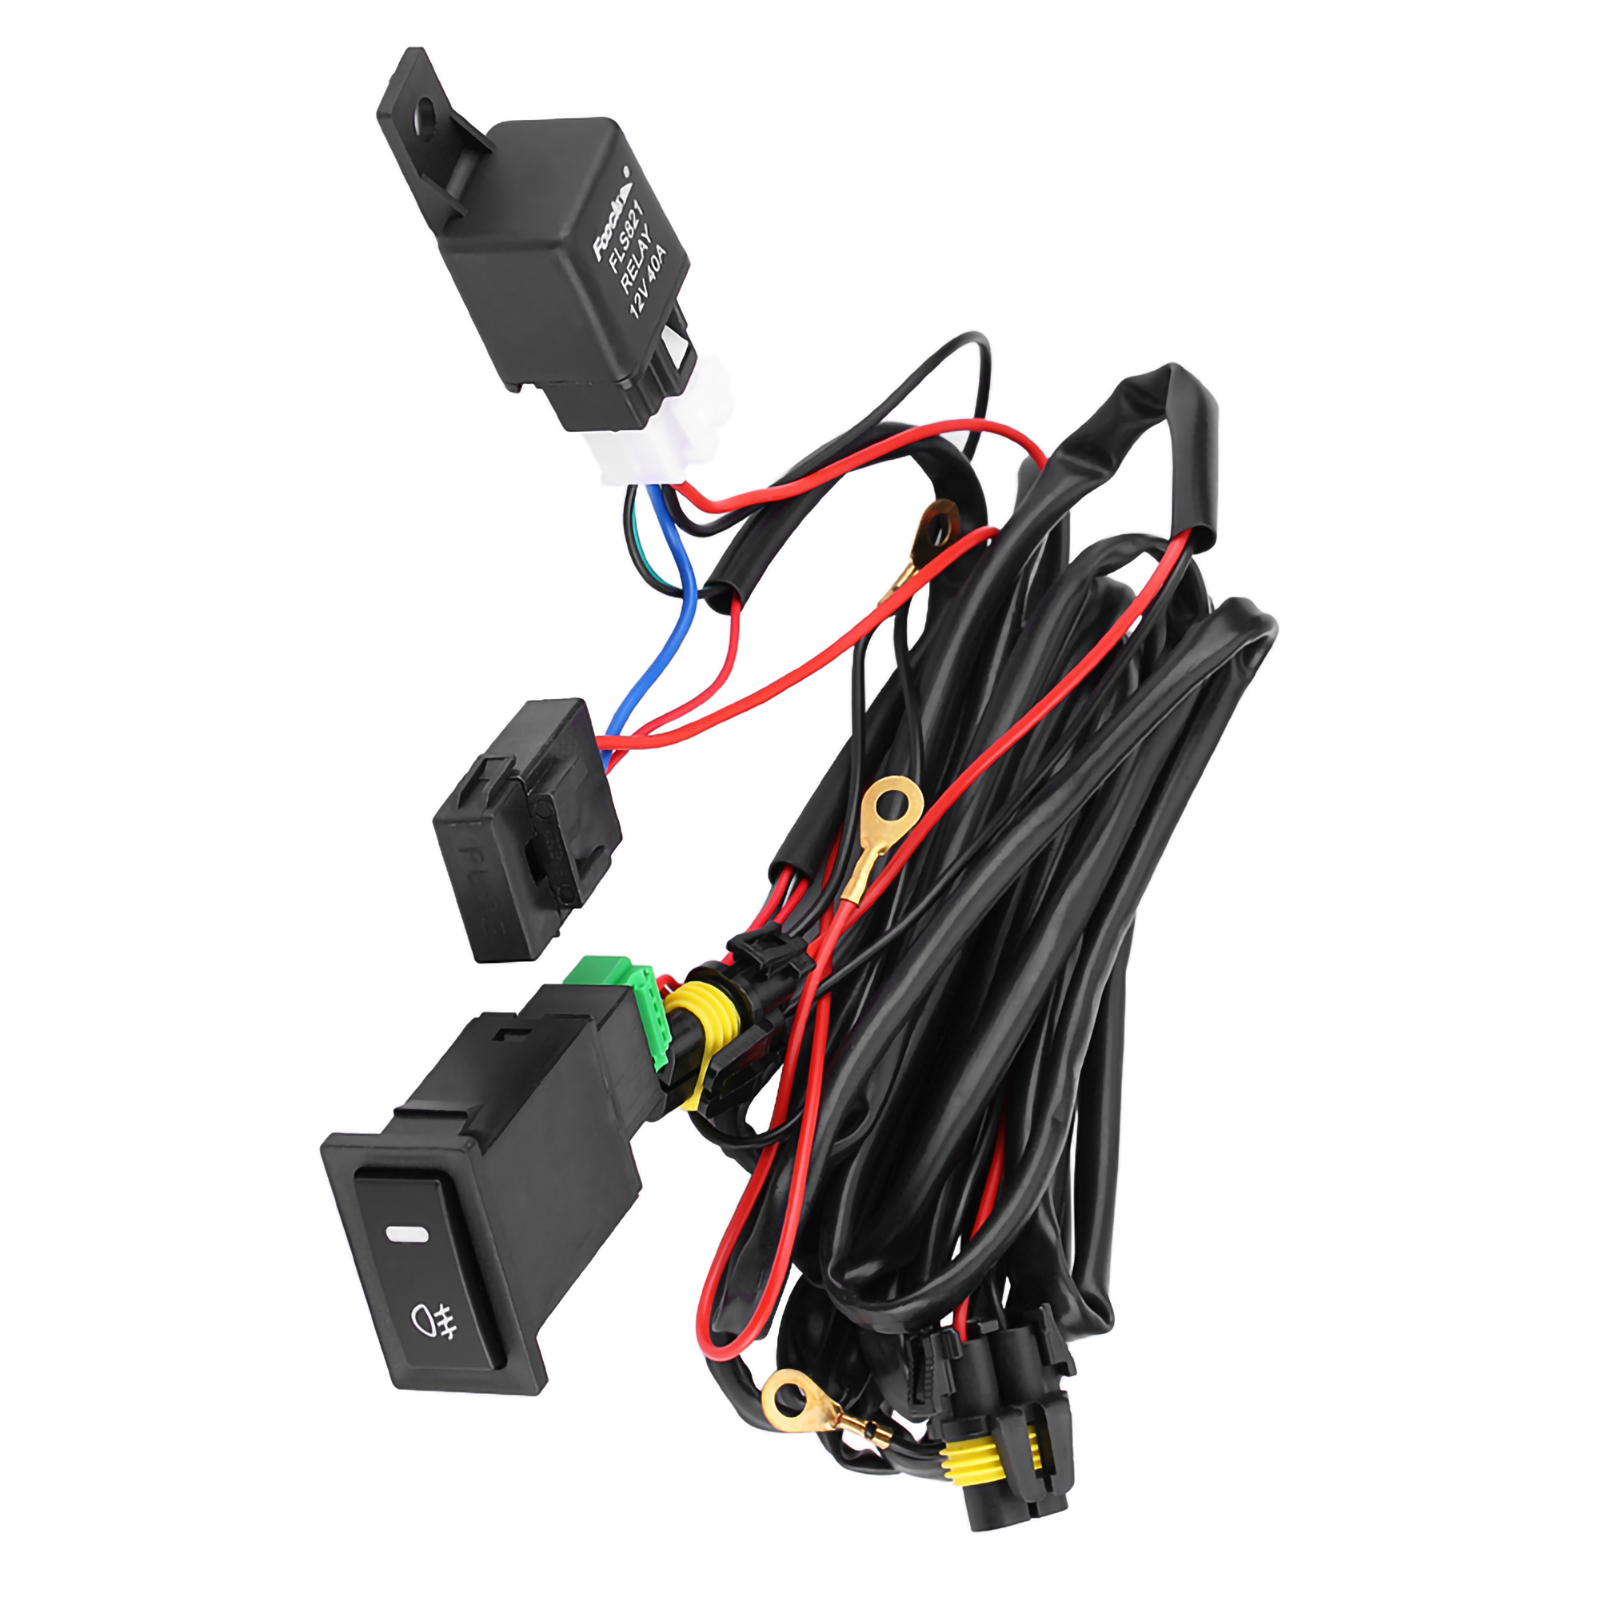 12v Car LED On/off Switch Fog Driving Light Wiring Harness Fuse ...